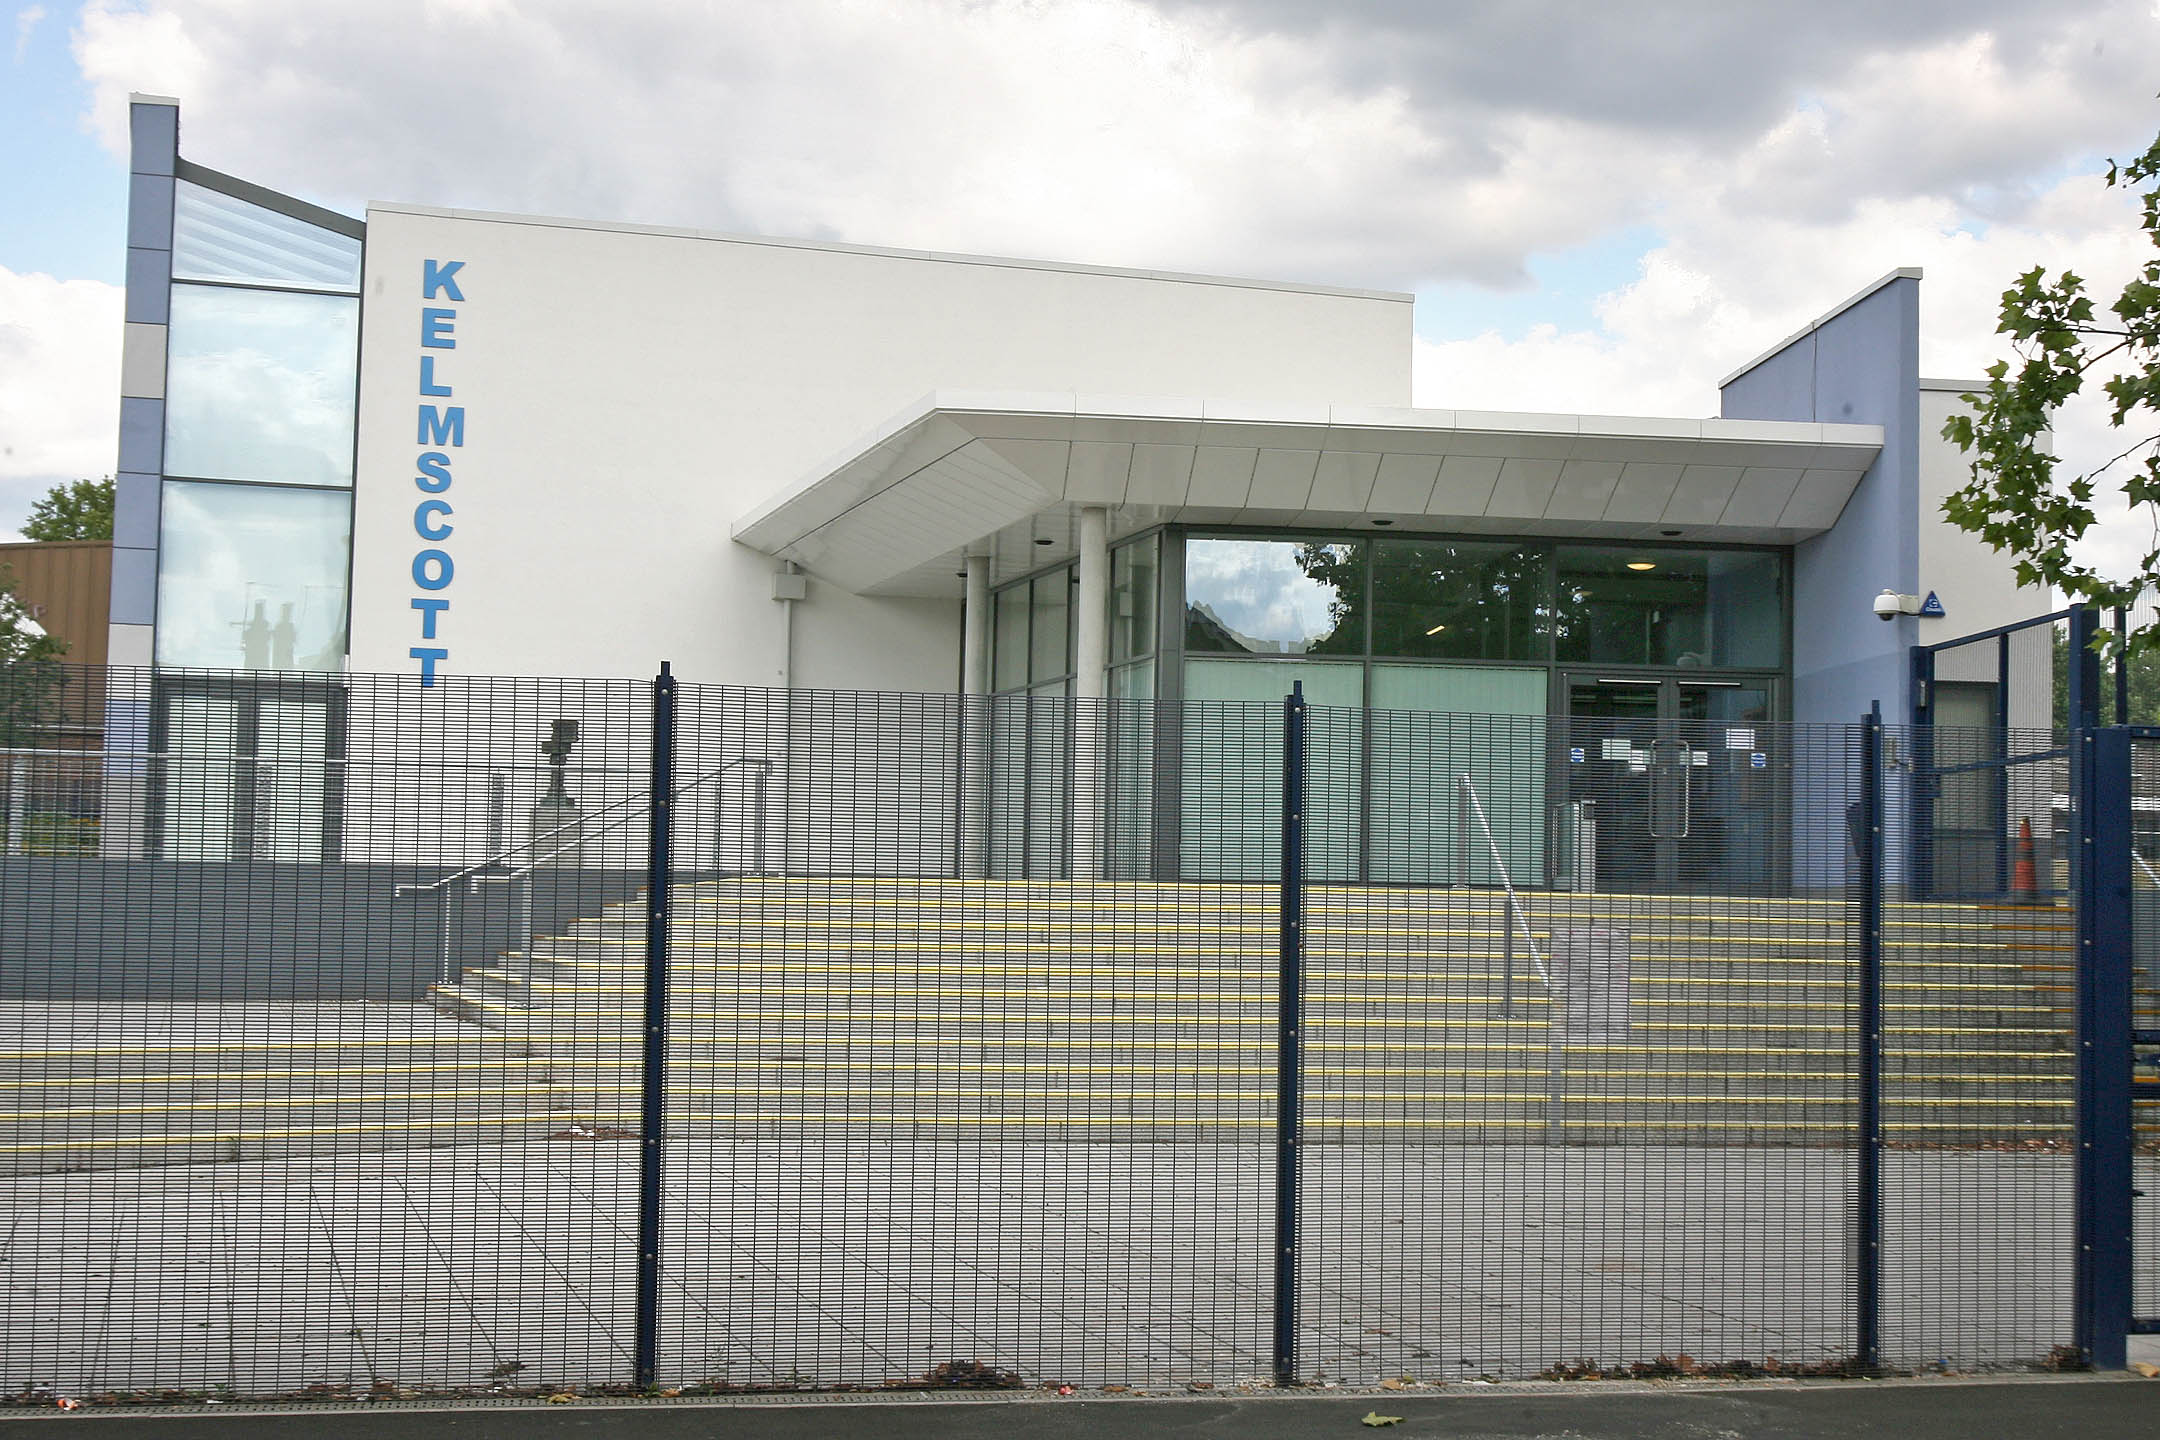 Just 32 per cent of pupils at Kelmscott School in Markhouse Road, Walthamstow, achieved five good GCSEs or above last year